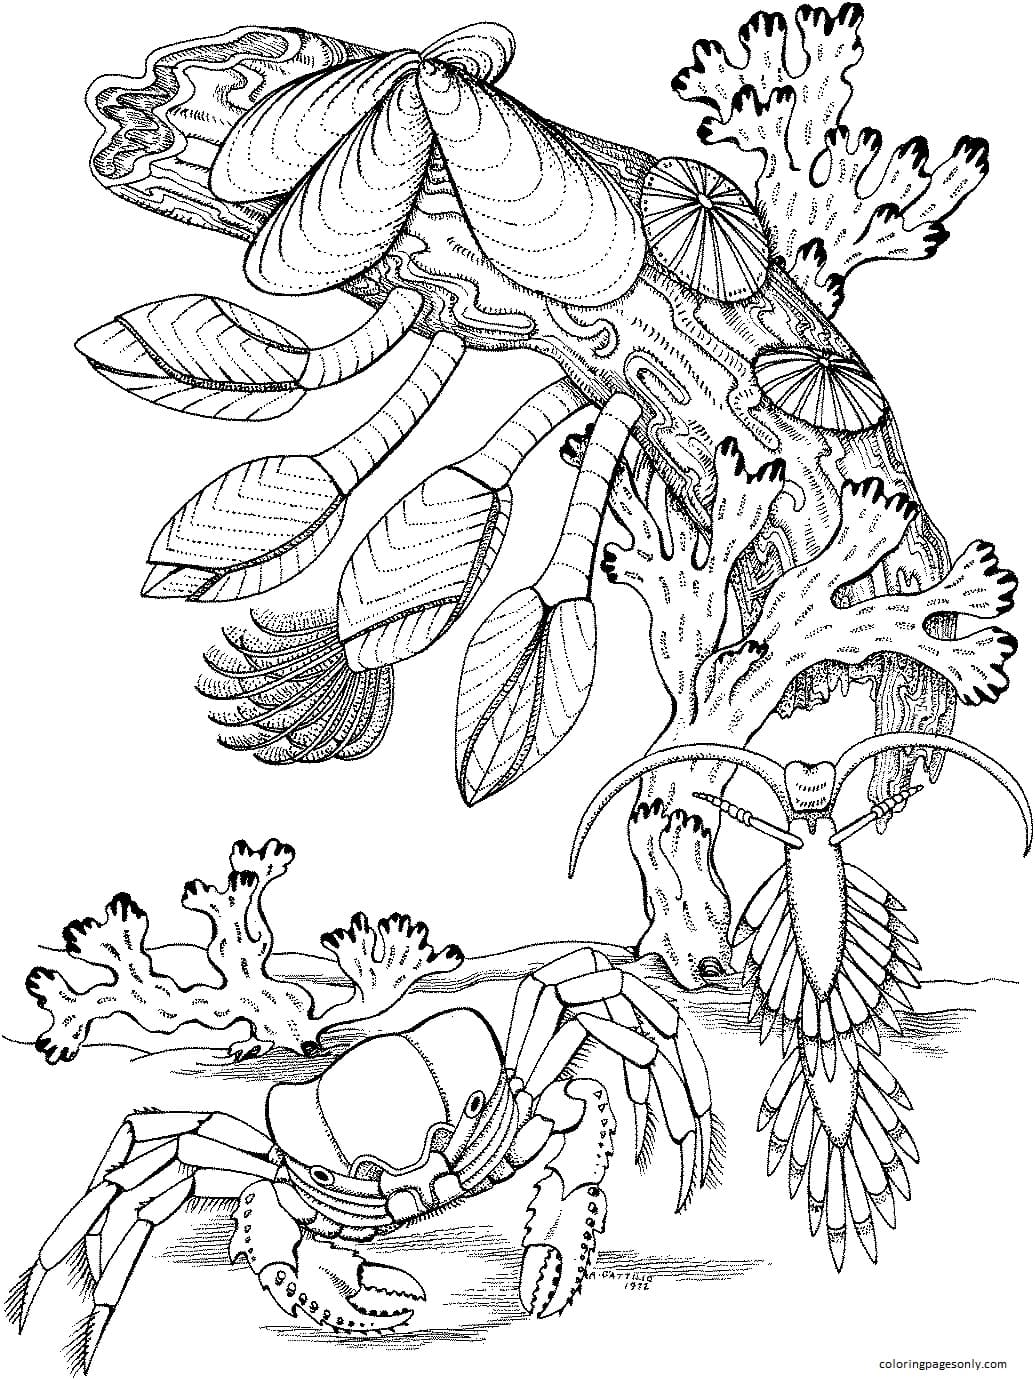 Crab near coral reef Coloring Page